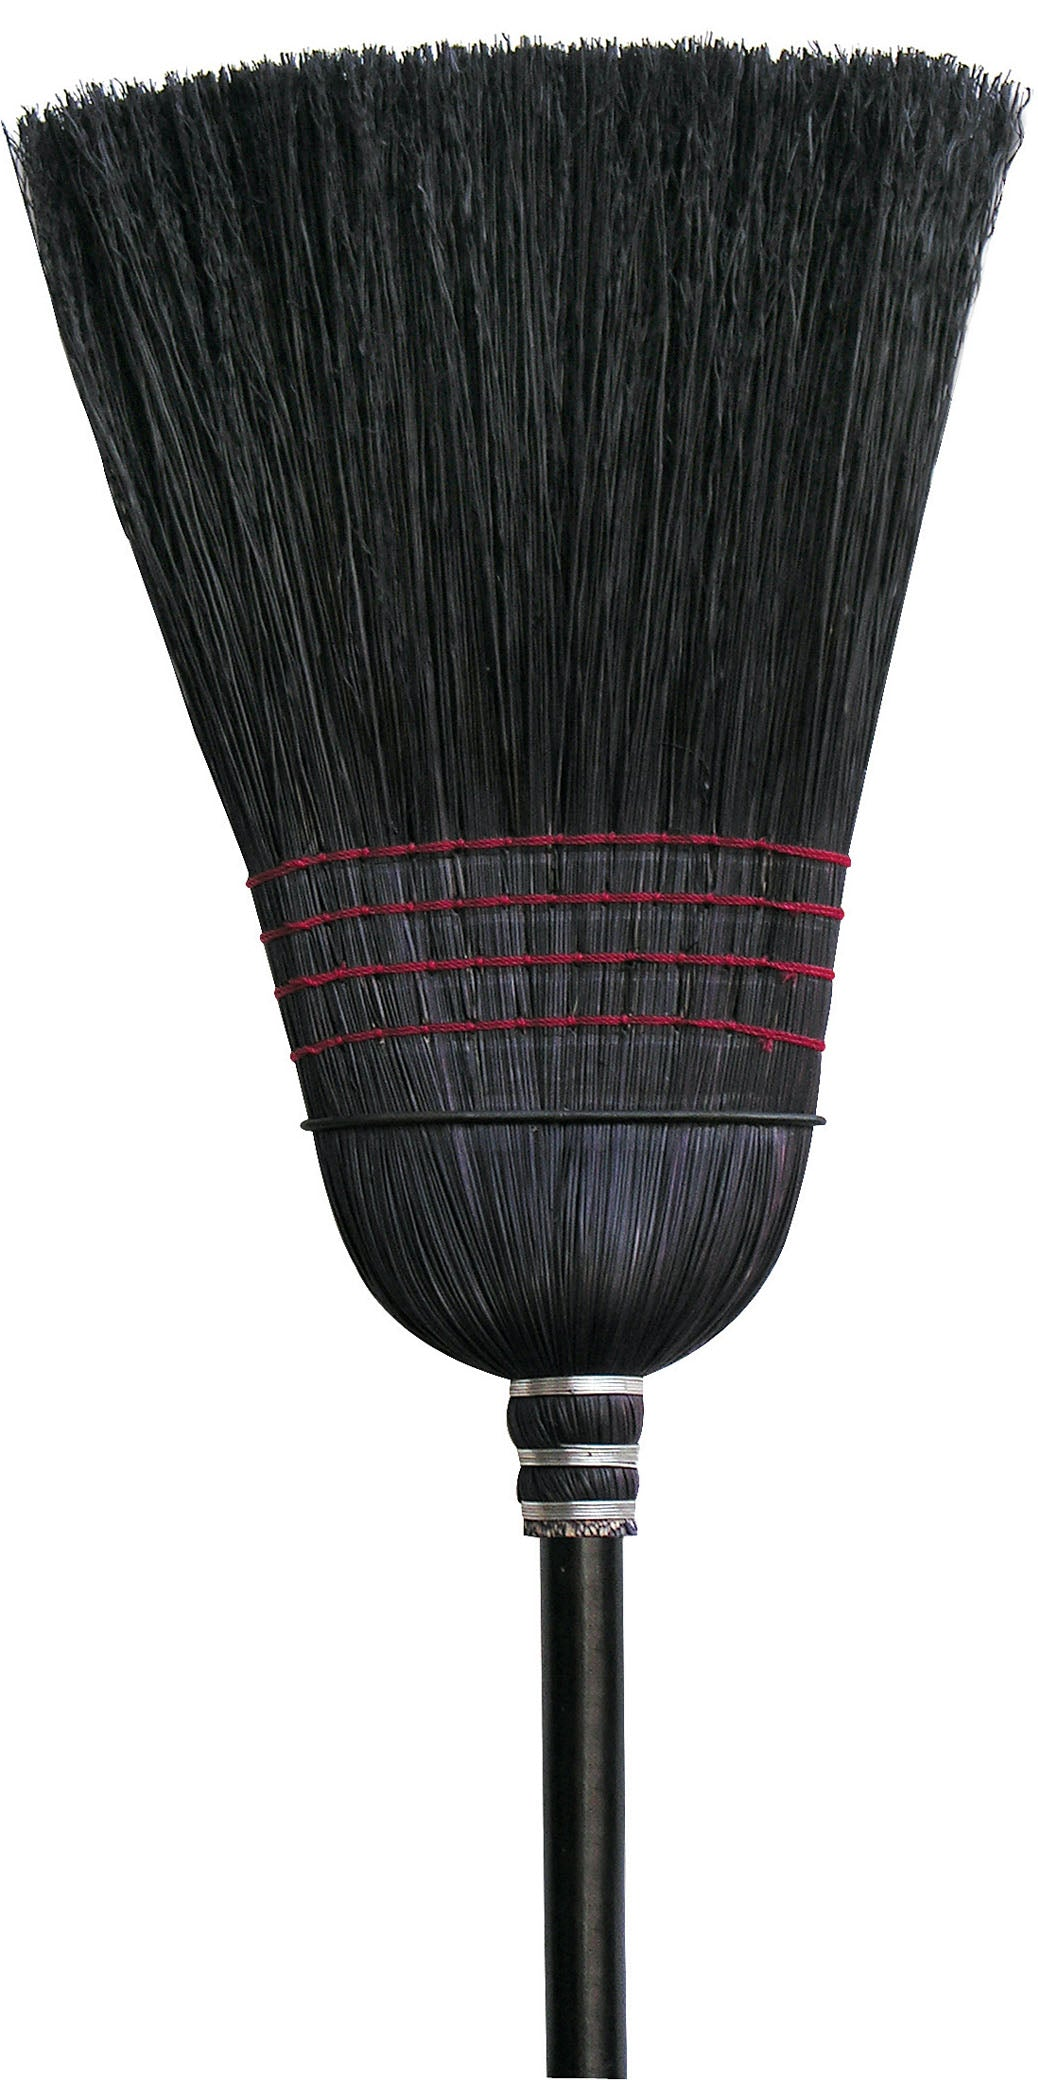 Warehouse 100% Black Corn Broom